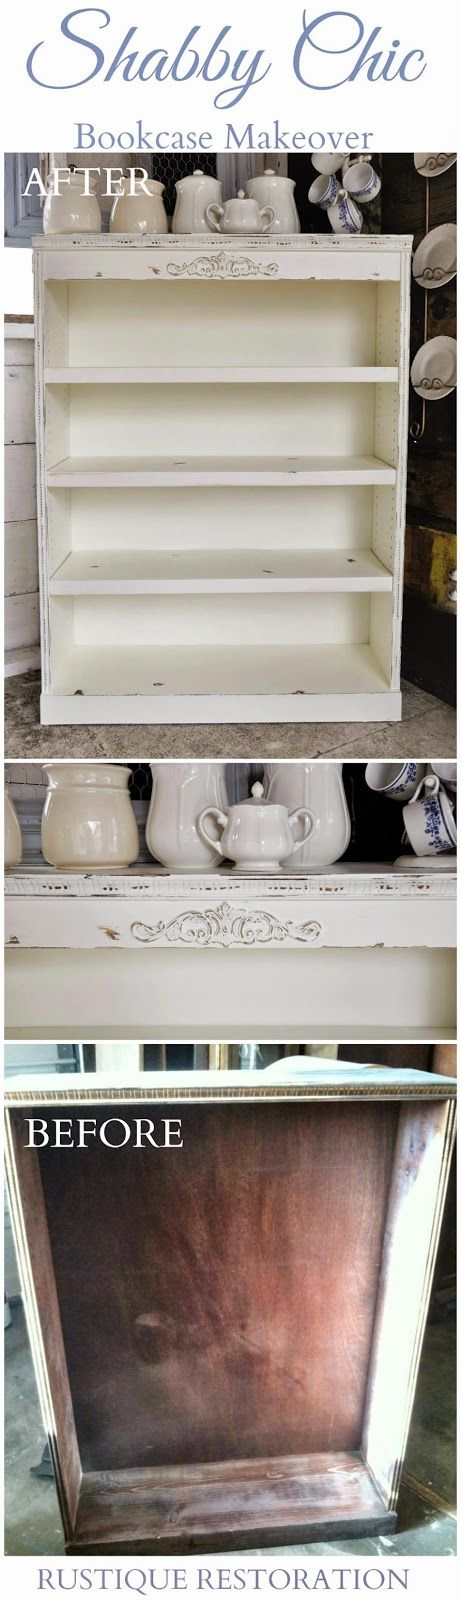 DIY Bookcase Makeover!  Shabby Chic and Vintage at Rustique Restoration